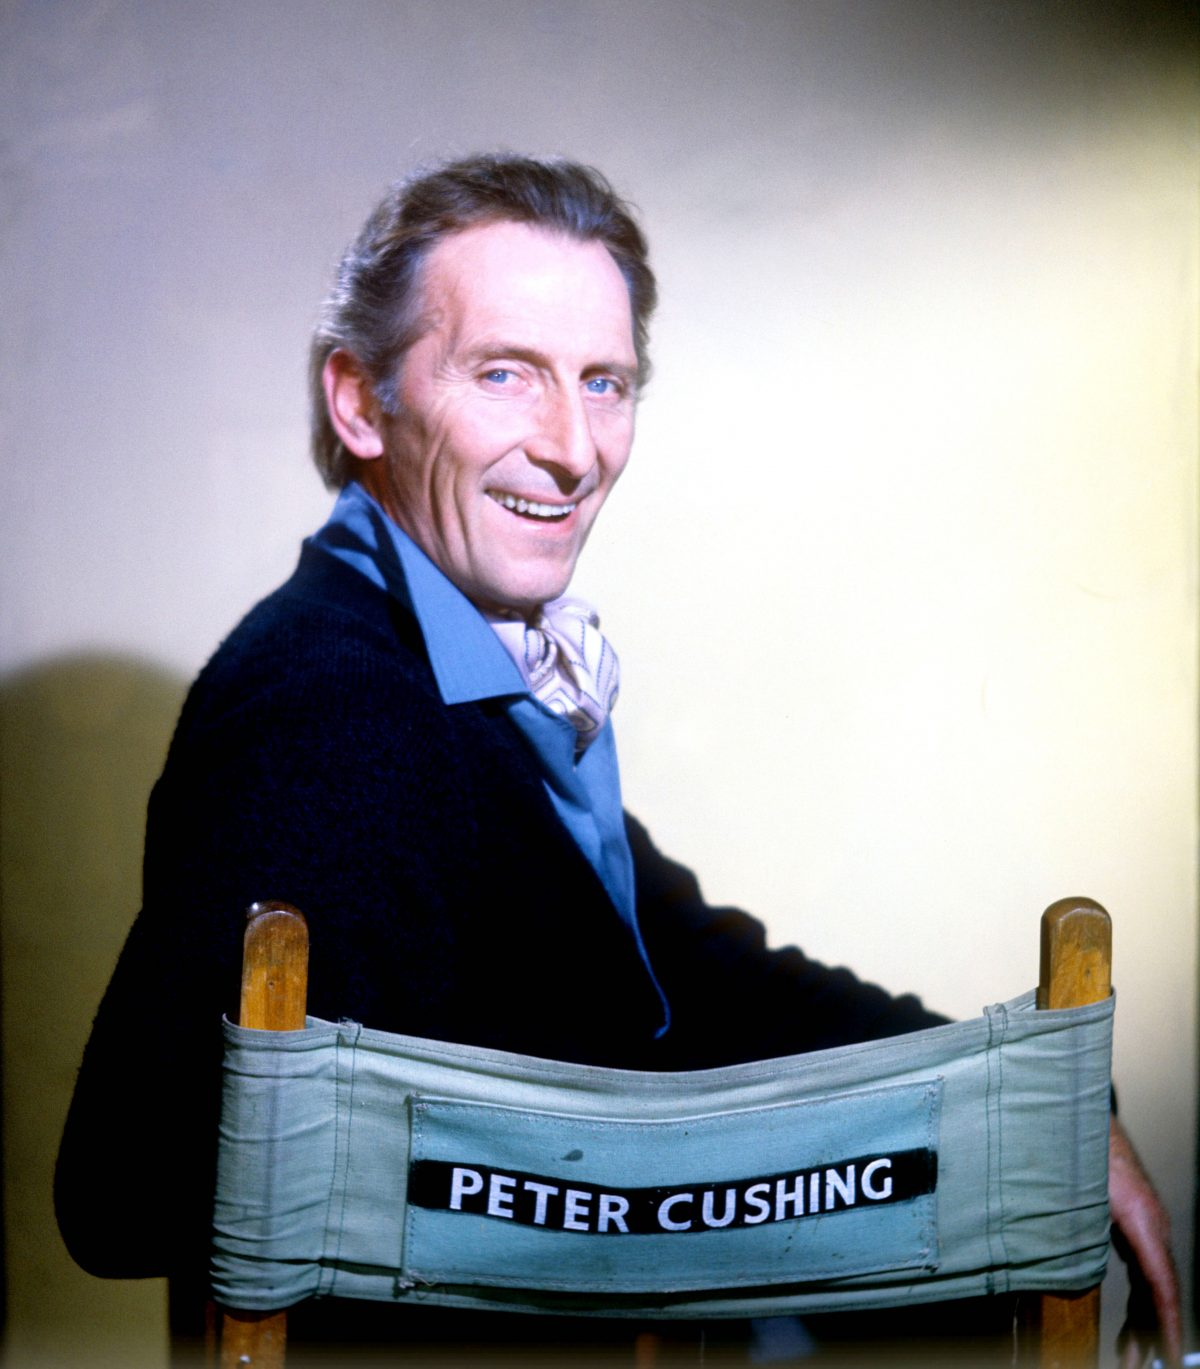 Peter Cushing, actor - 1967